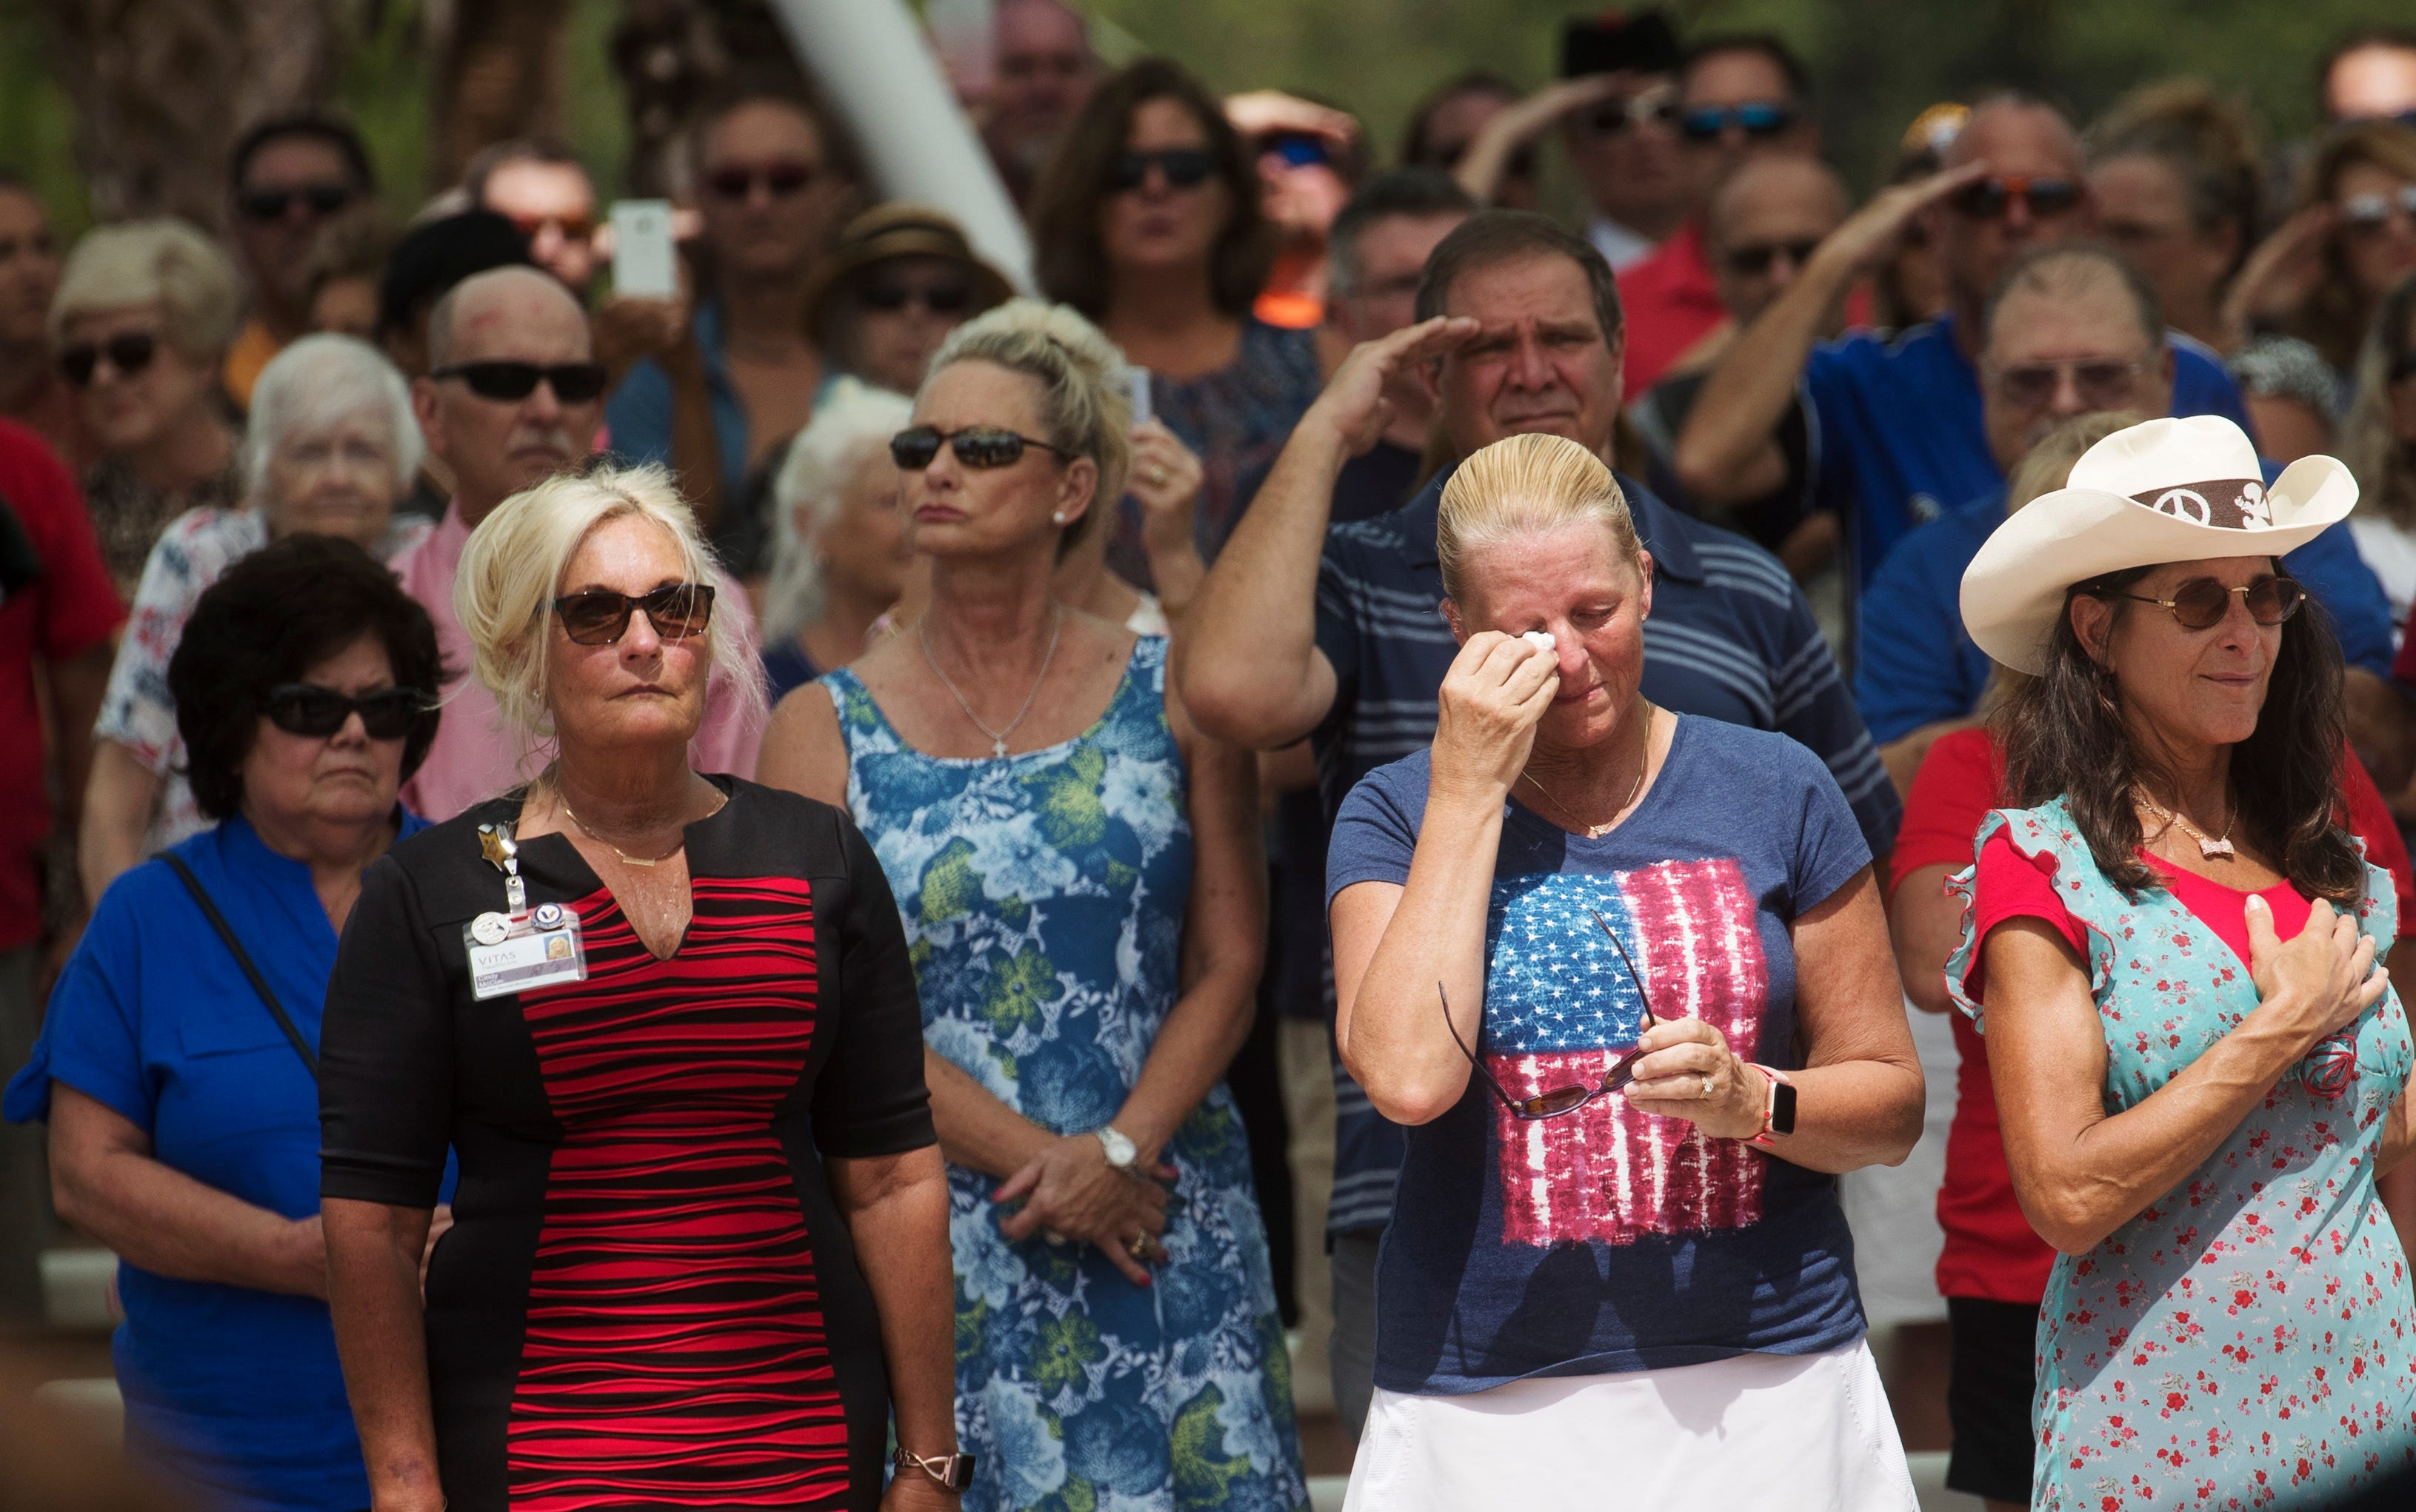 More than 1,000 strangers unite at funeral veteran with no known family